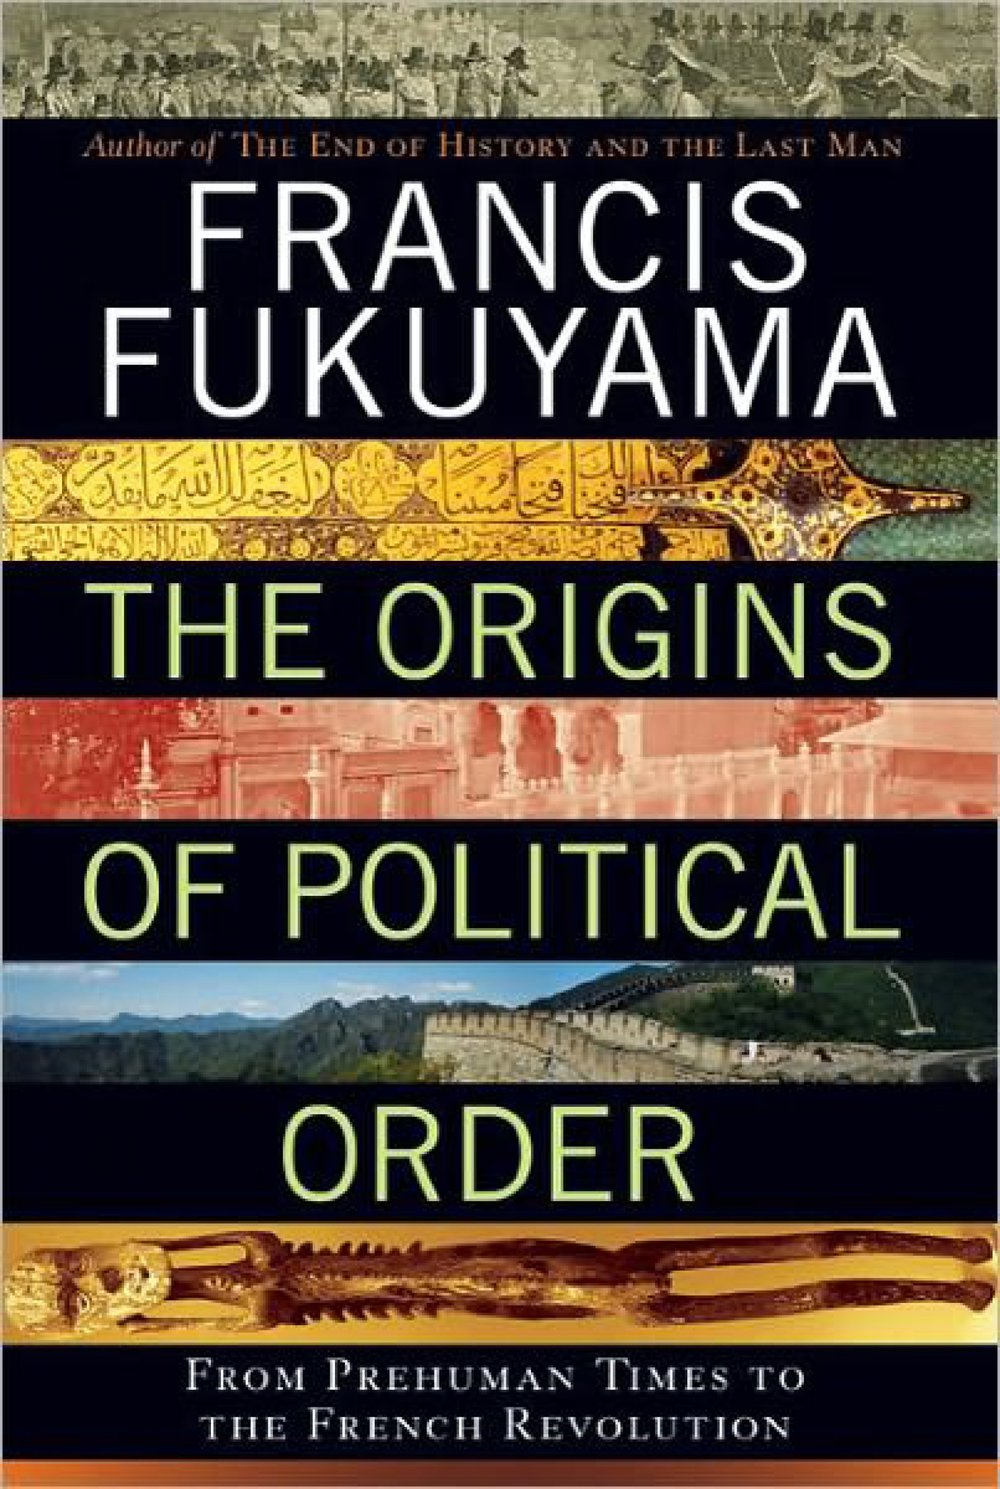 Francis Fukuyama • The origins of political order: From prehuman times to the french revolution • Farrar, Strauss and Giroux, 2011.